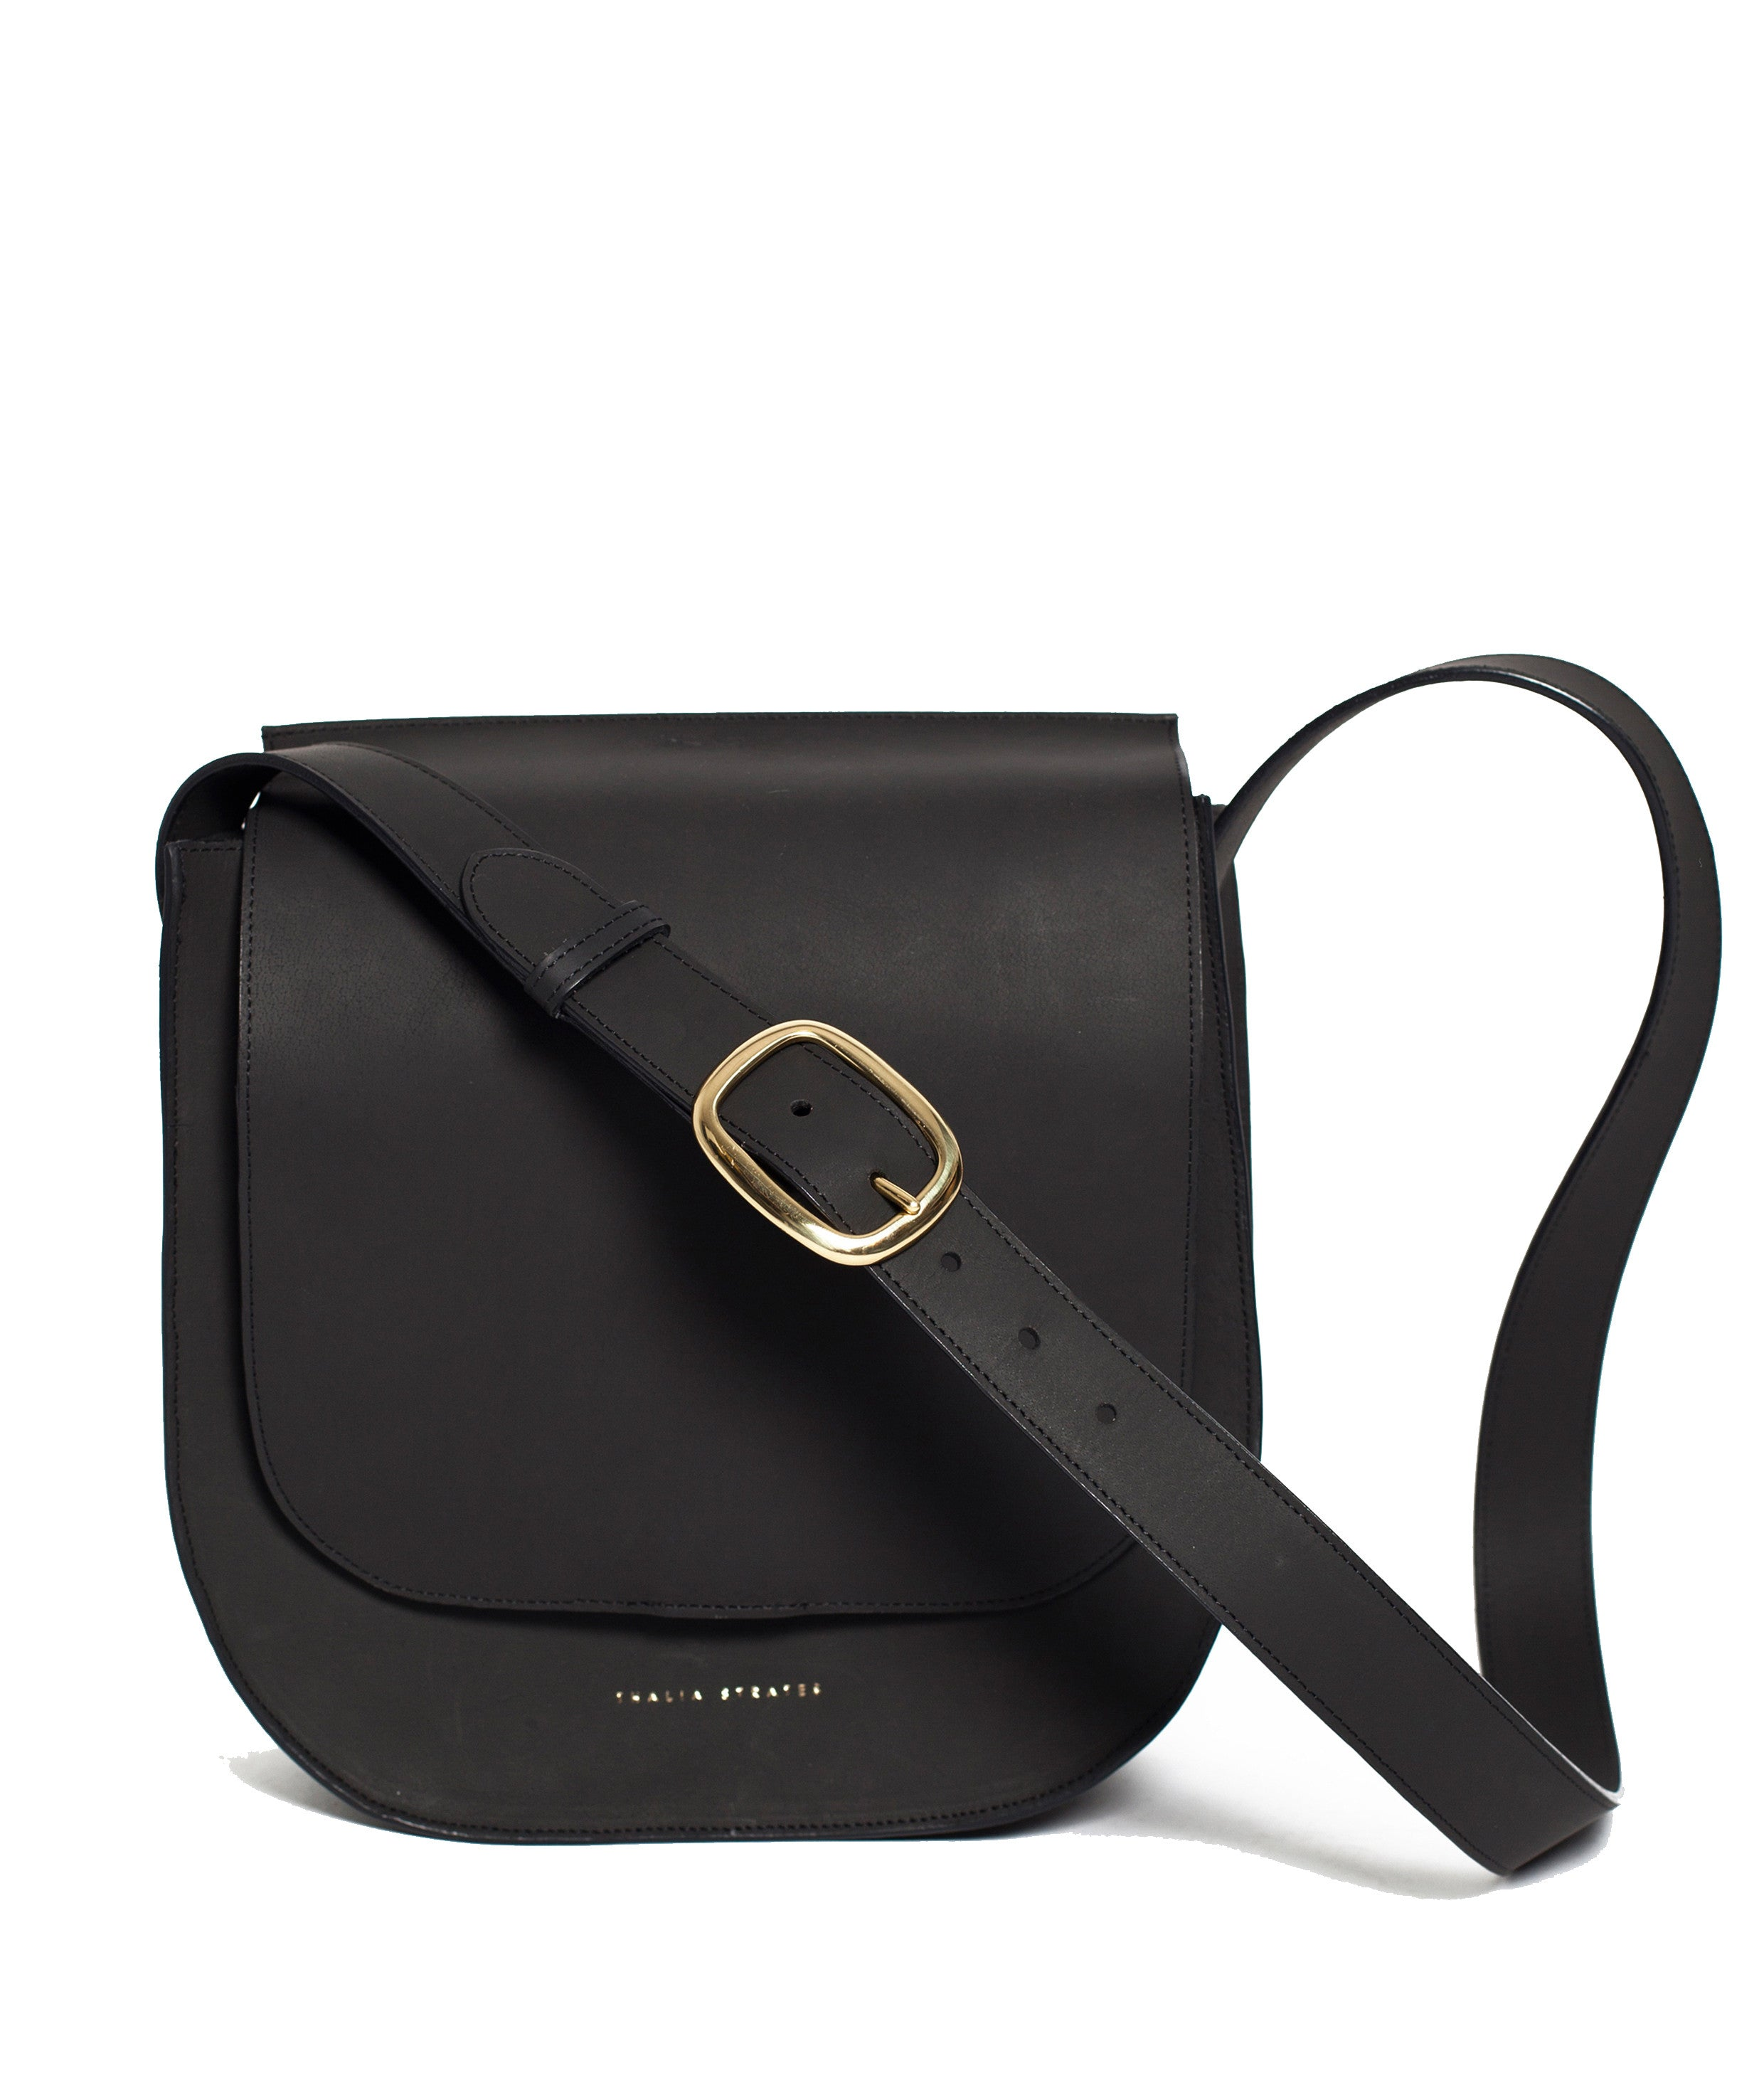 Amara Leather Bag - Black